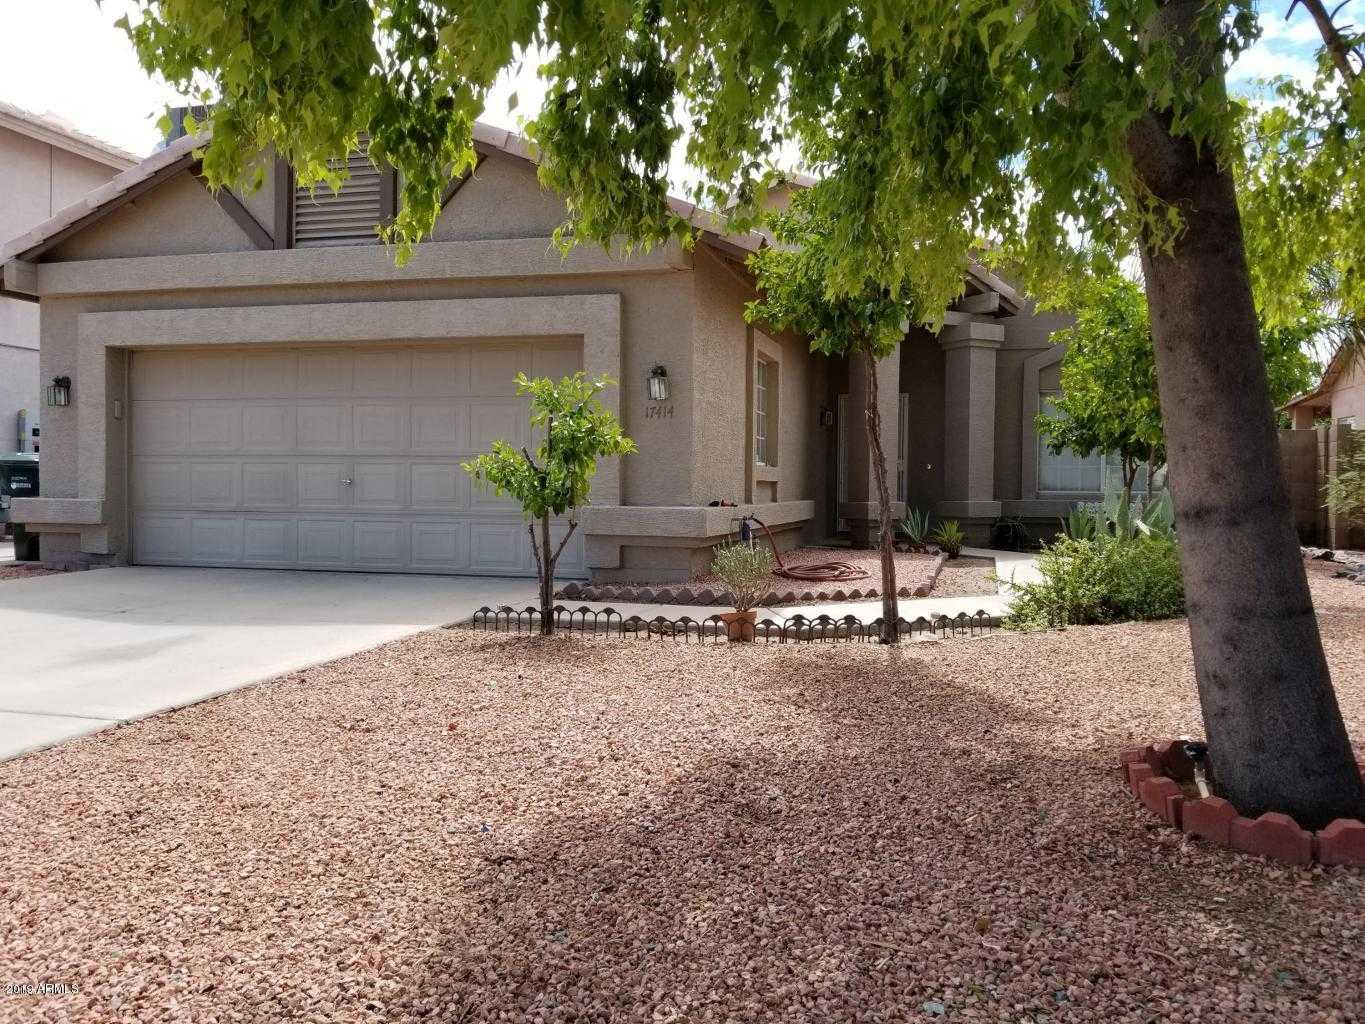 $259,900 - 3Br/2Ba - Home for Sale in Grover Park, Phoenix